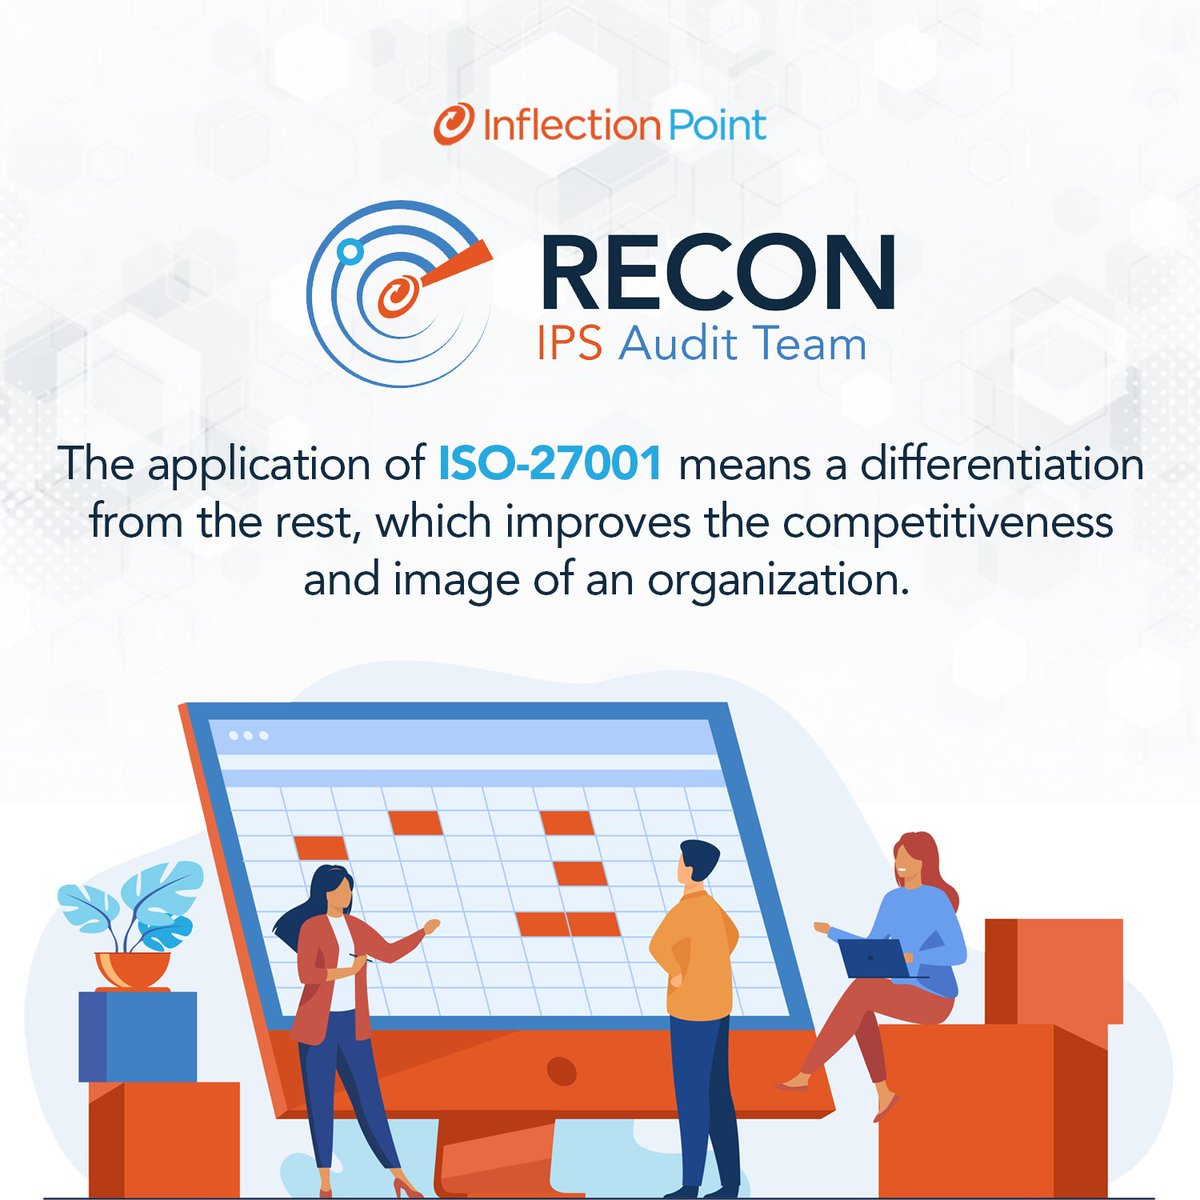 On our upcoming Internal Audit, our #RECON team is going to verify the degree of conformity in the activities, processes, and products with the requirements and procedures in the ISO-27001 standard. #WeAreIPS https://t.co/VnUT7VM4NB